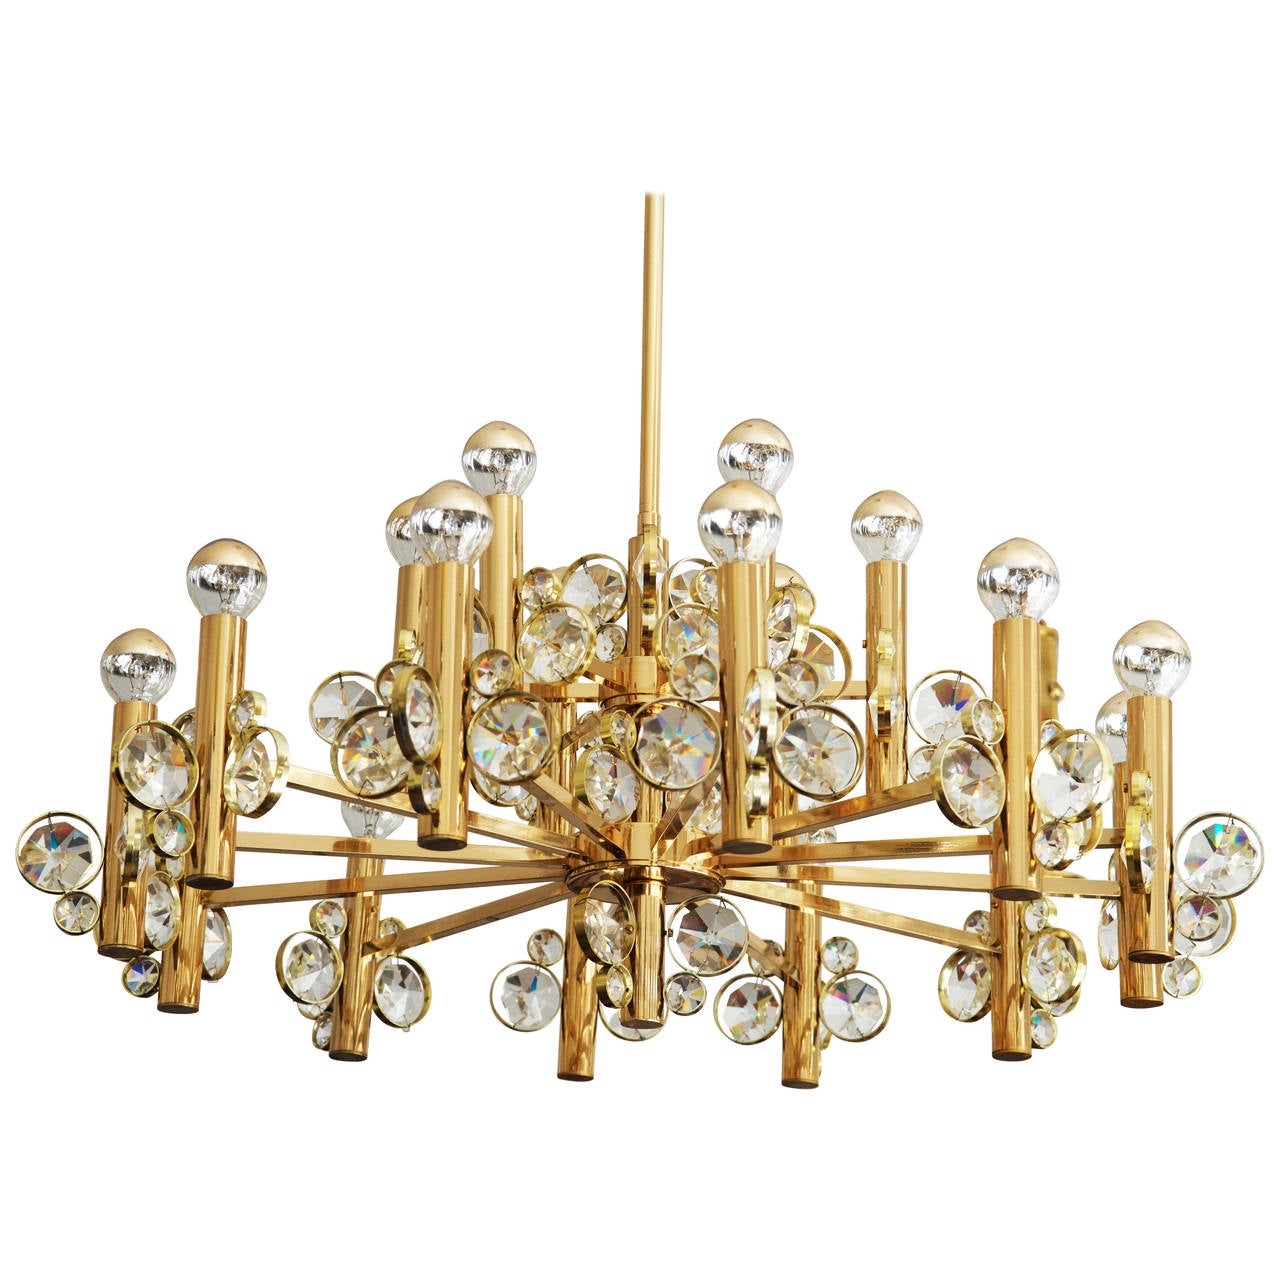 Large Impressive Cut Crystal Chandelier Attributed to Gaetano Sciolari For Sale